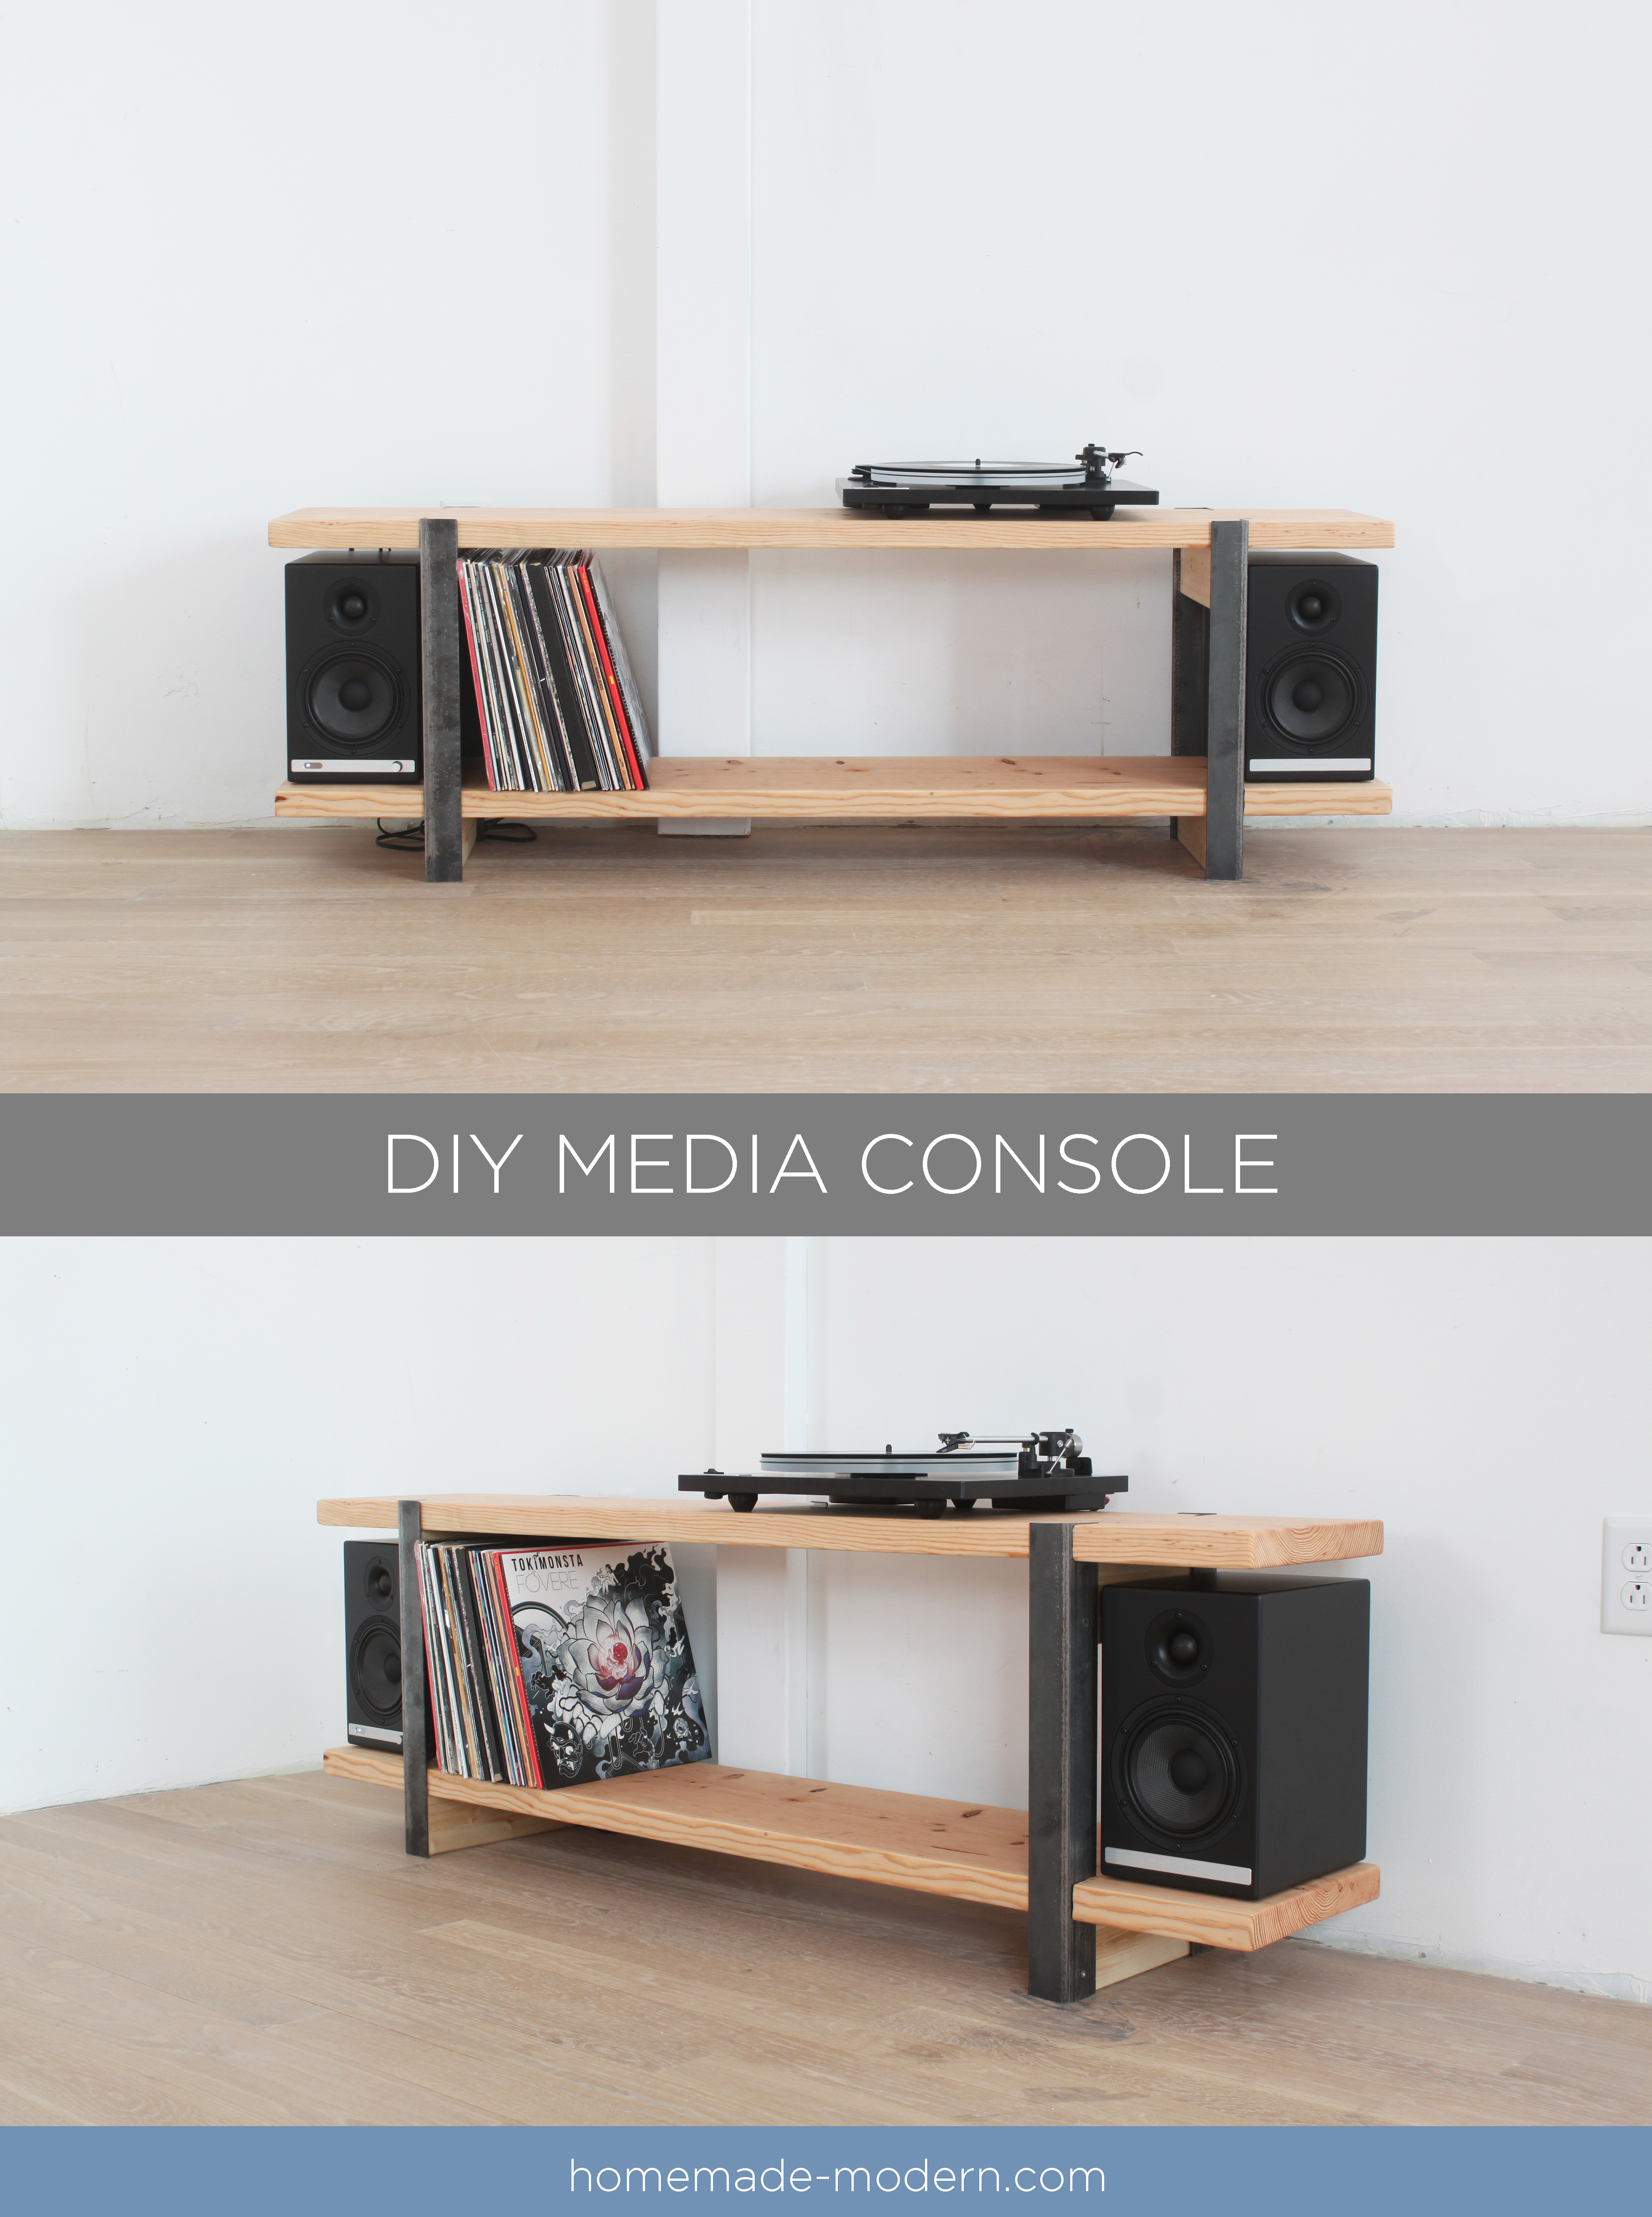 This DIY Media Console Is Made Out Of A 2x12 And Angle Irons And The Shelves